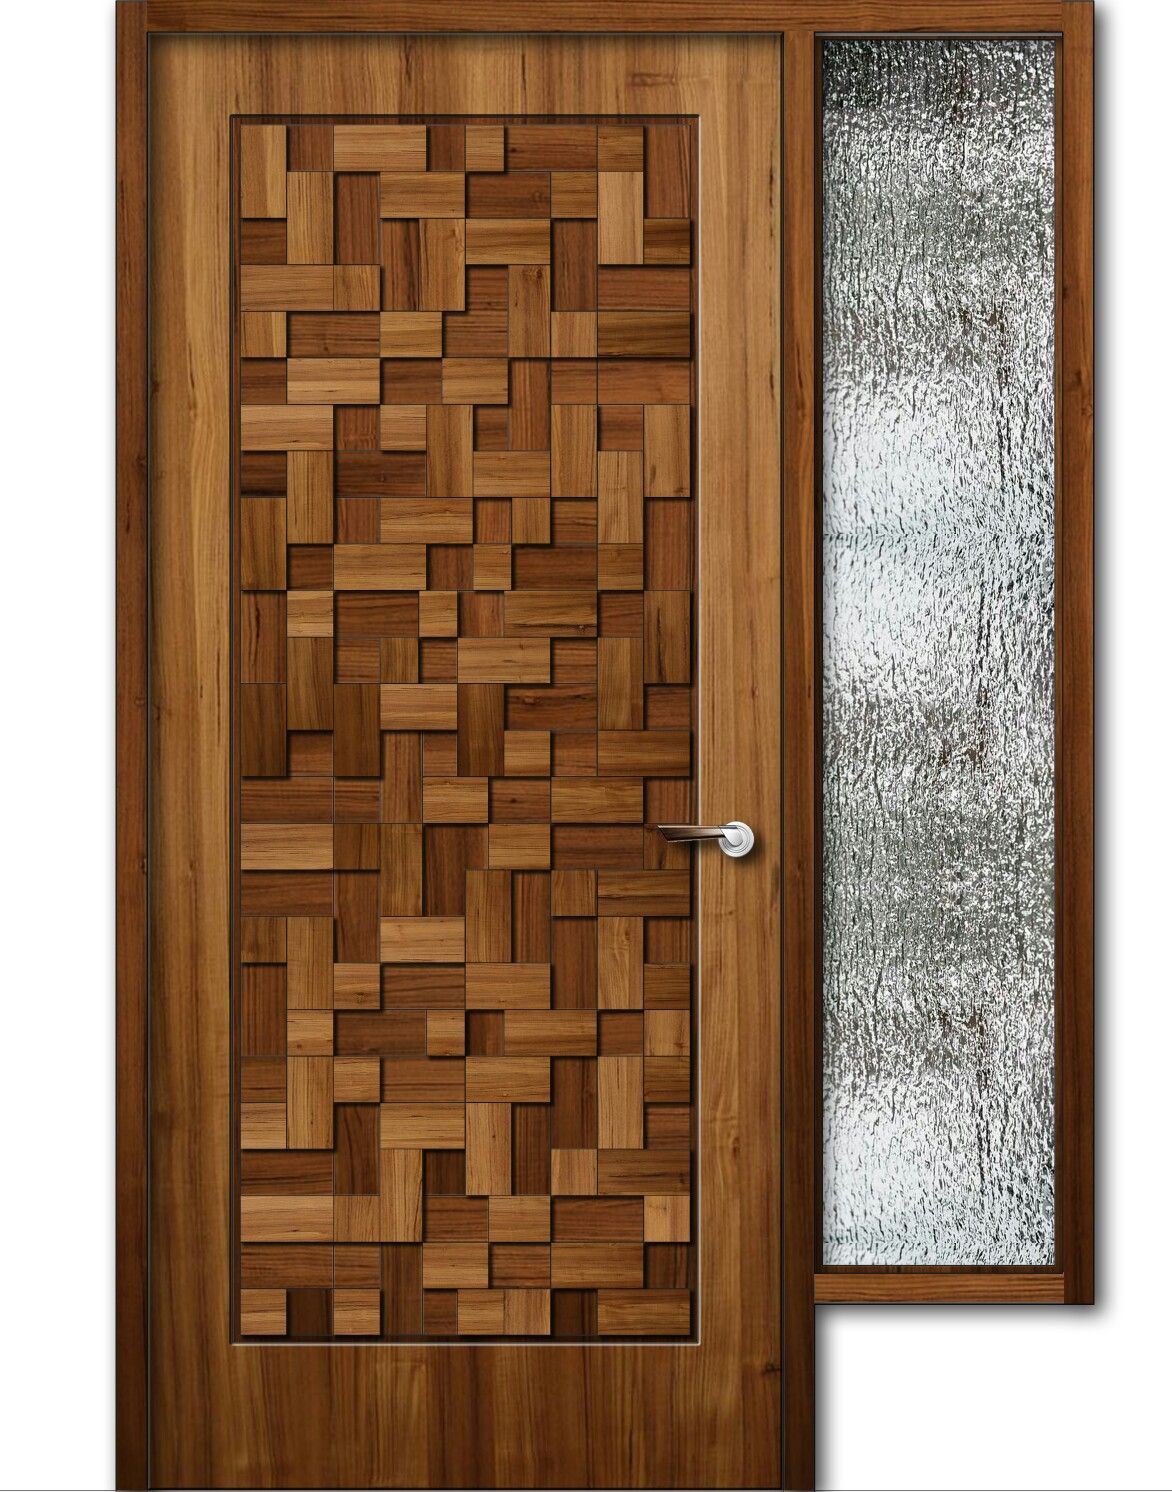 Teak wood finish wooden door with window 8feet height for Office main door design